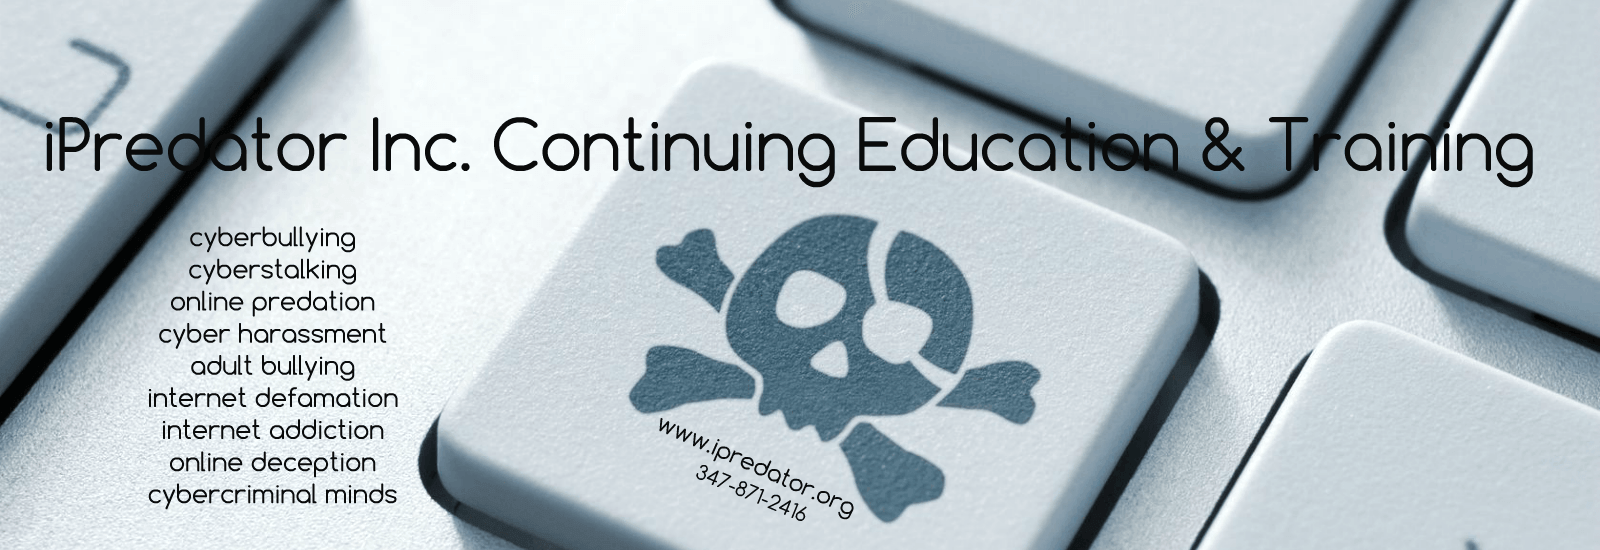 continuing-education-cyberstalking-cyberbullying-training-ipredator-inc.-new-york-1600x550